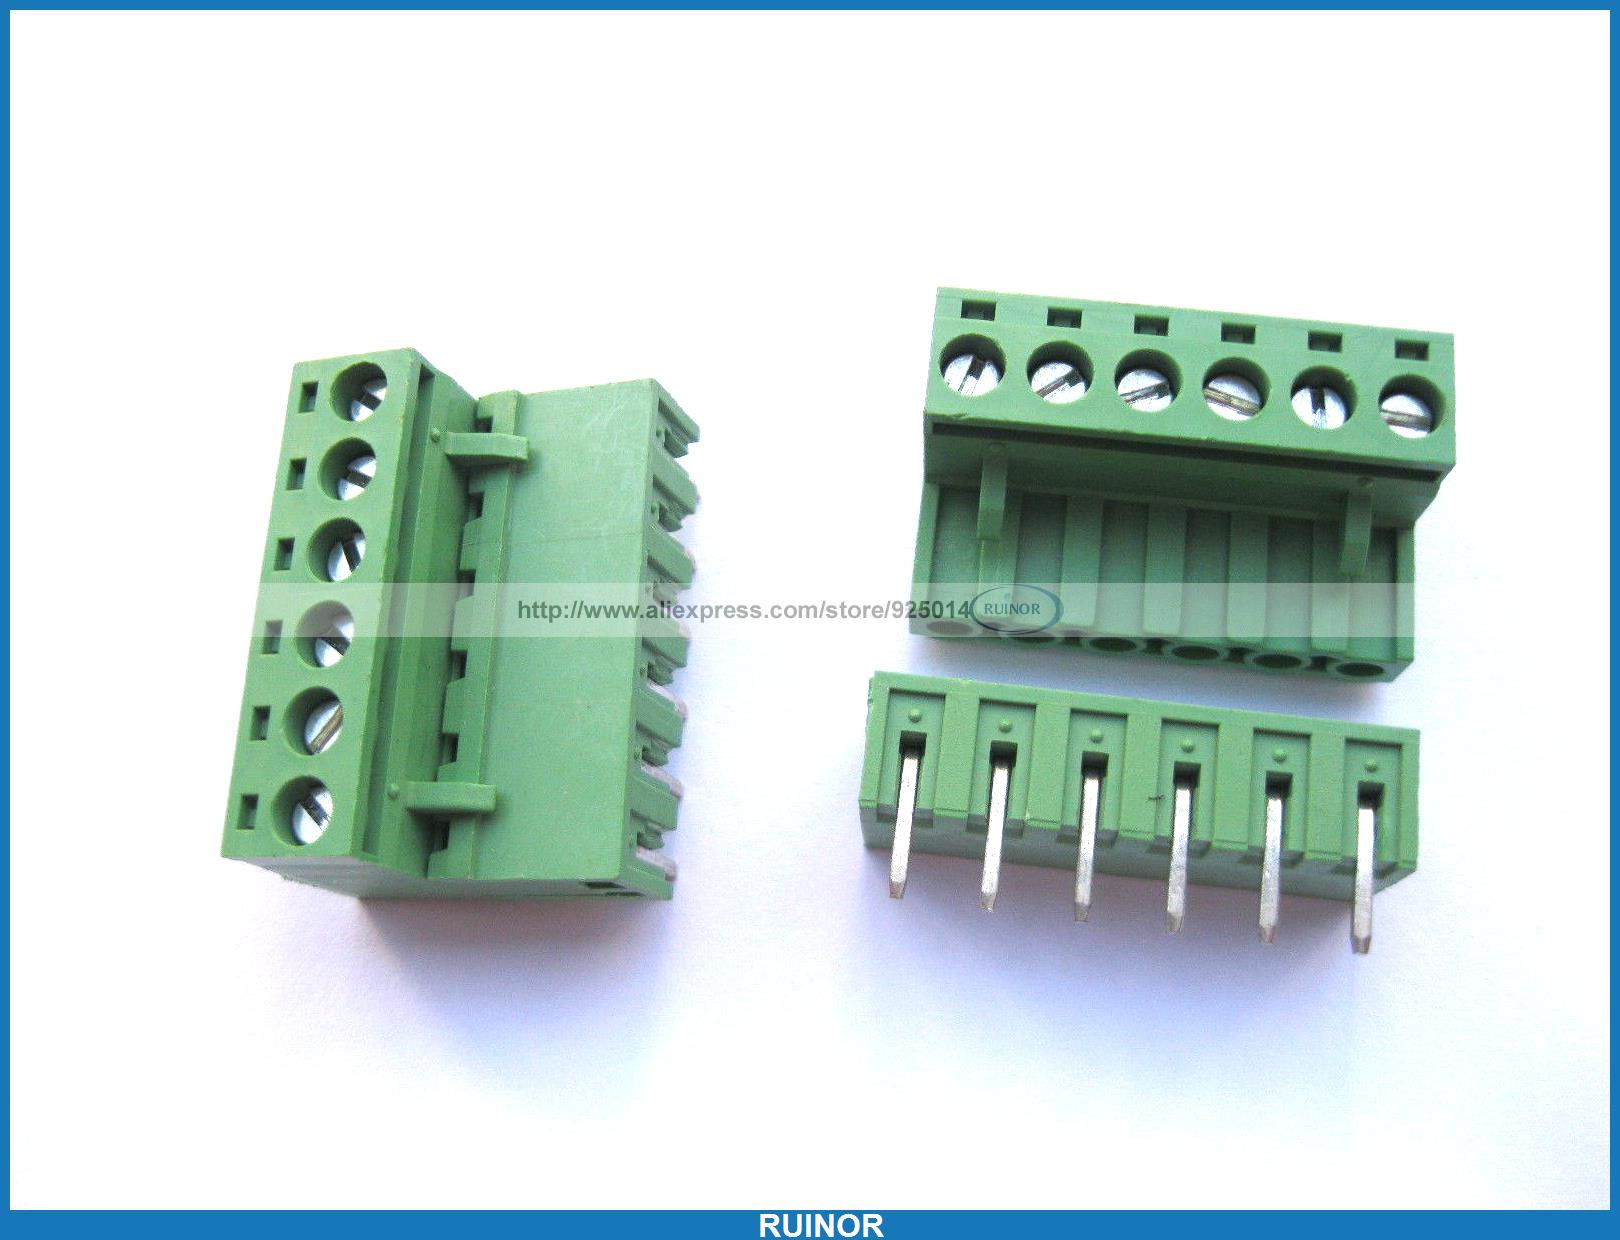 50 Pcs 5 08mm Angle 6 Pin Screw Terminal Block Connector Pluggable Type Green crazyfit mesh hollow out sport tank top women 2018 shirt quick dry fitness yoga workout running gym yoga top clothing sportswear